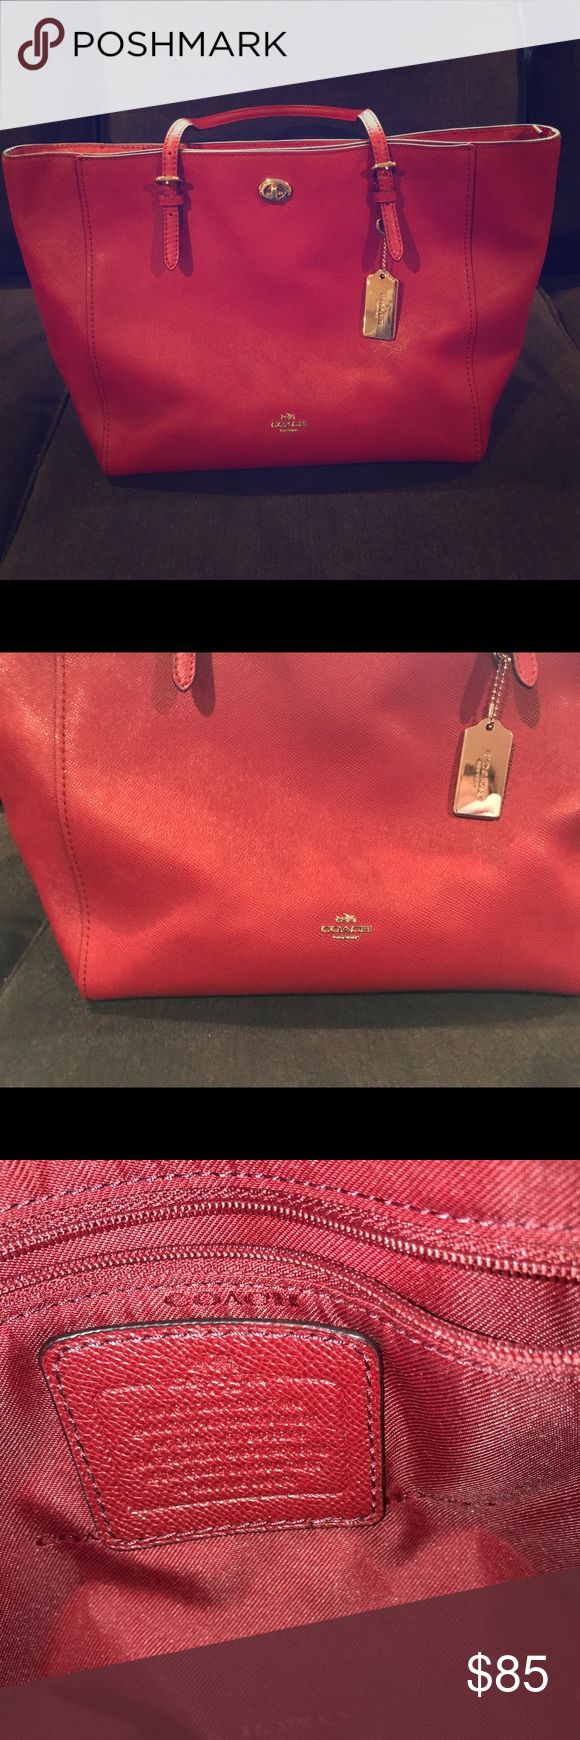 Coach Tote Cranberry Coach Tote- looks great year round! Front pocket with shiny clasp, zipper so important things don't fall out, handles/straps in great condition, interior clean! Coach Bags Totes